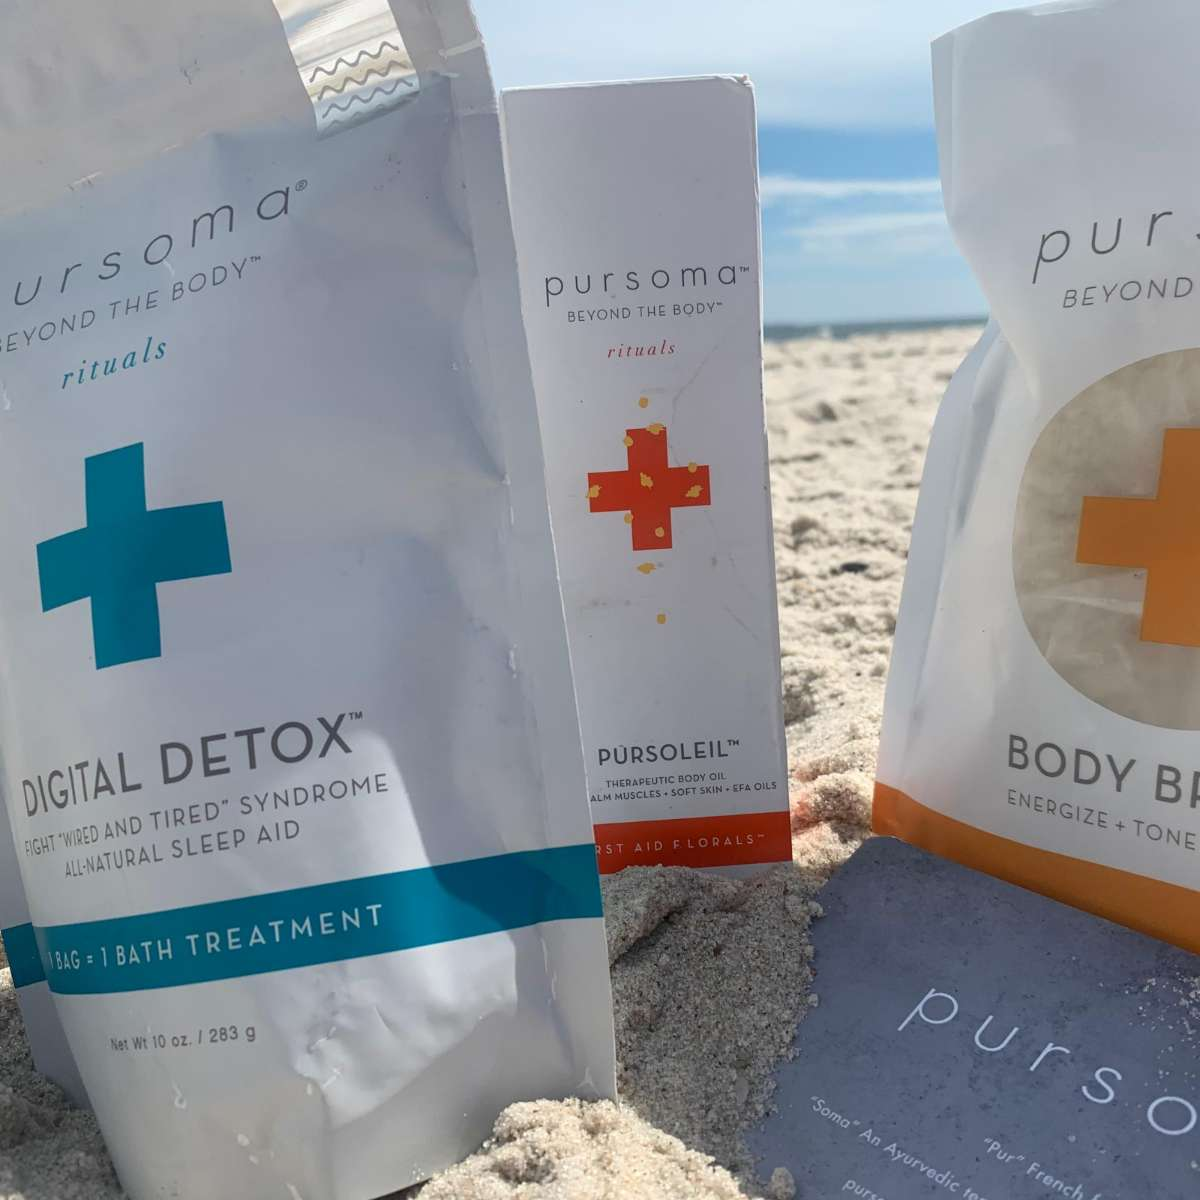 Check out these amazing beauty products by Pursoma Photo